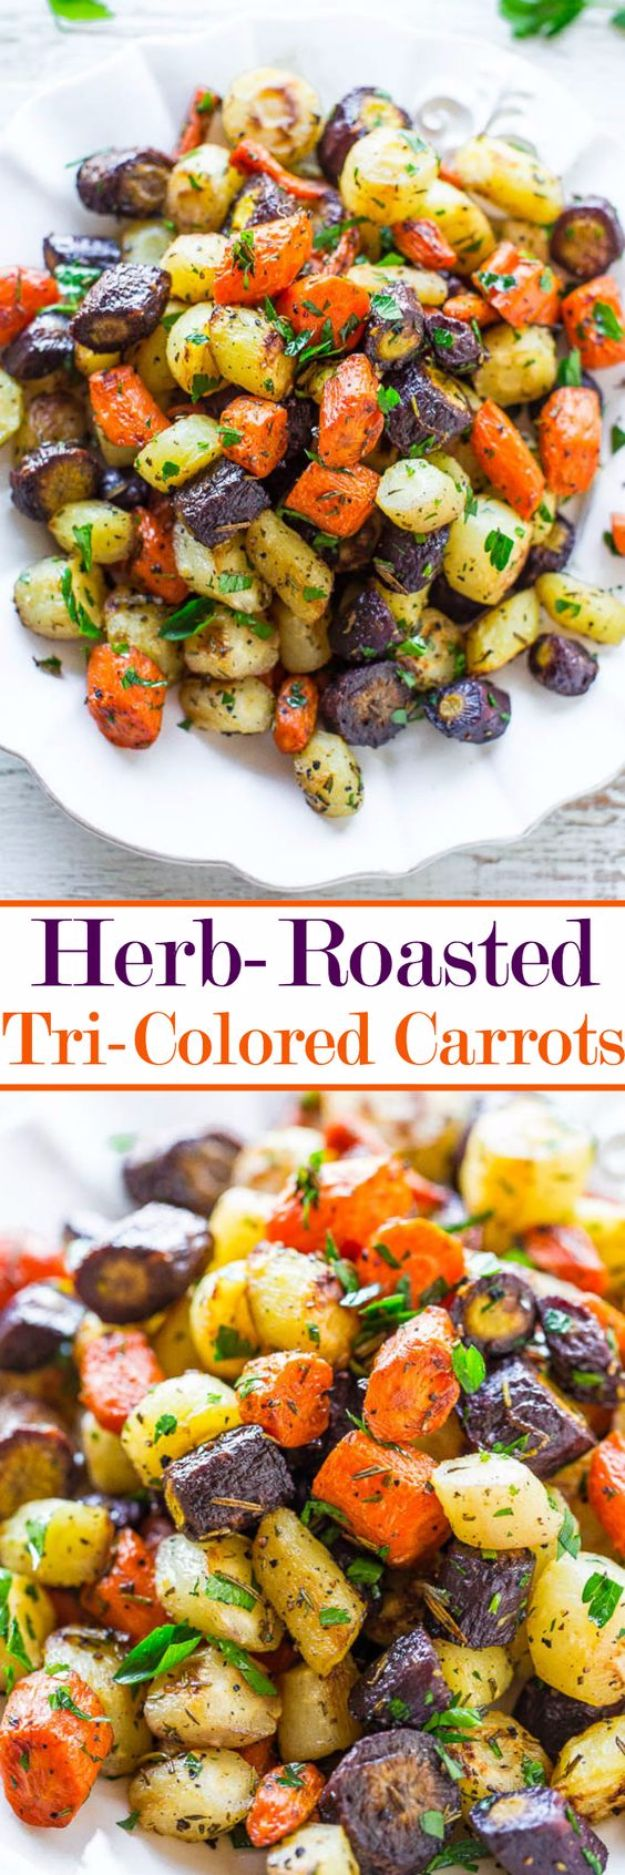 Best Easter Dinner Recipes - Herb Roasted Tri Colored Carrots - Easy Recipe Ideas for Easter Dinners and Holiday Meals for Families - Side Dishes, Slow Cooker Recipe Tutorials, Main Courses, Traditional Meat, Vegetable and Dessert Ideas - Desserts, Pies, Cakes, Ham and Beef, Lamb - DIY Projects and Crafts by DIY JOY